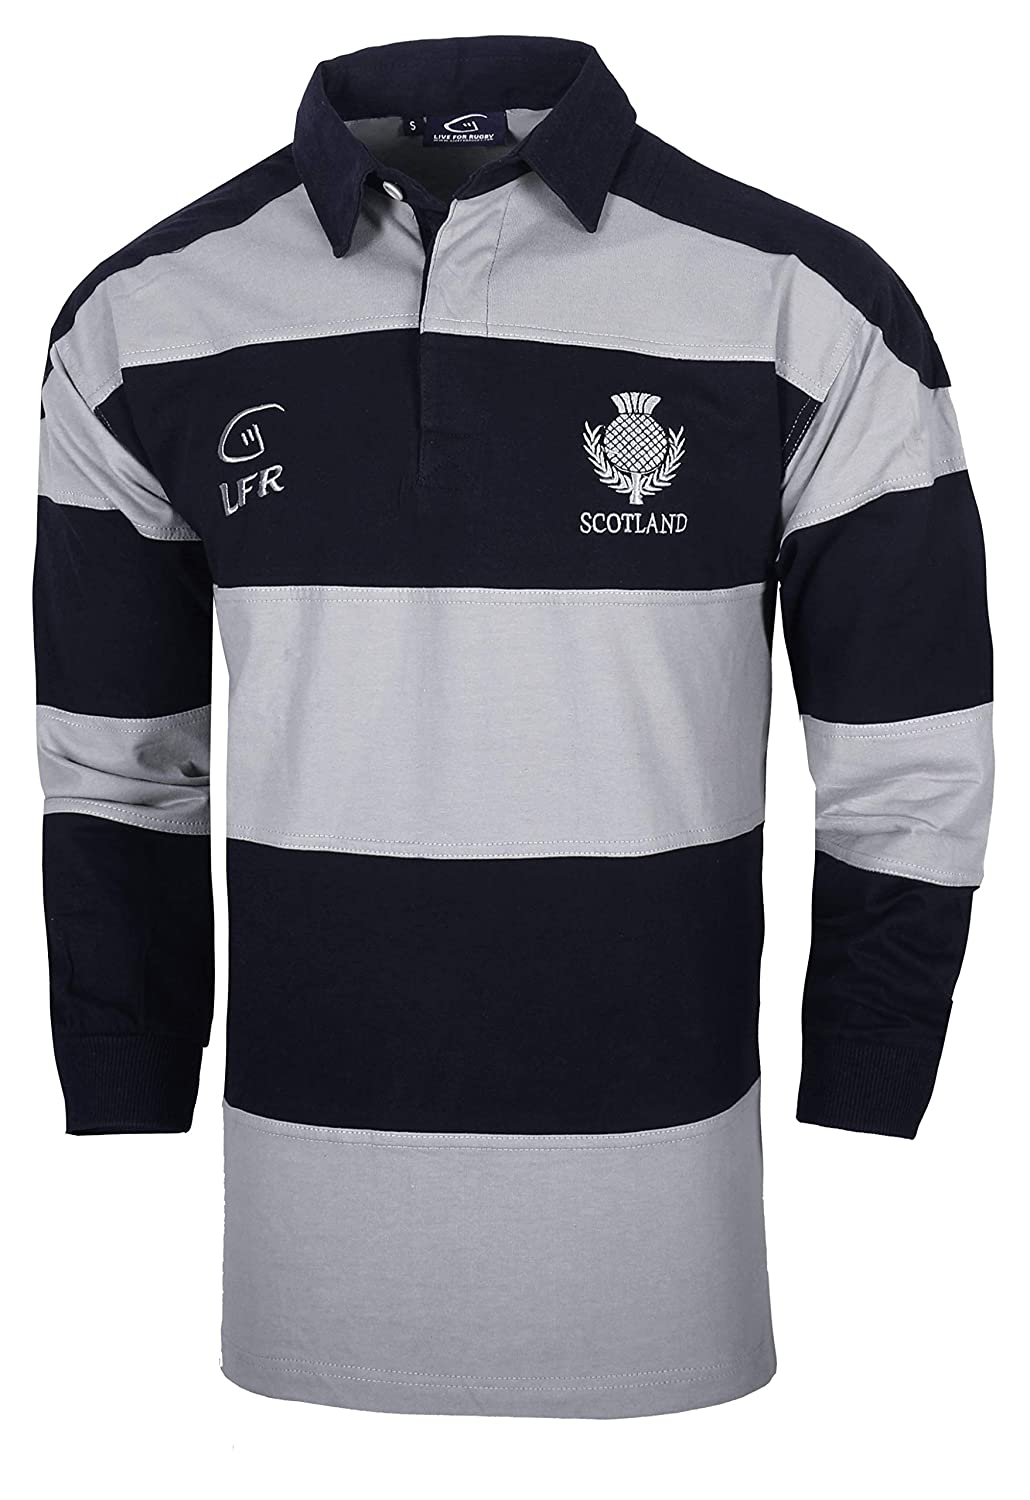 0741be8dad0 Amazon.com: Scotland Longsleeve Striped Rugby Jersey: Clothing